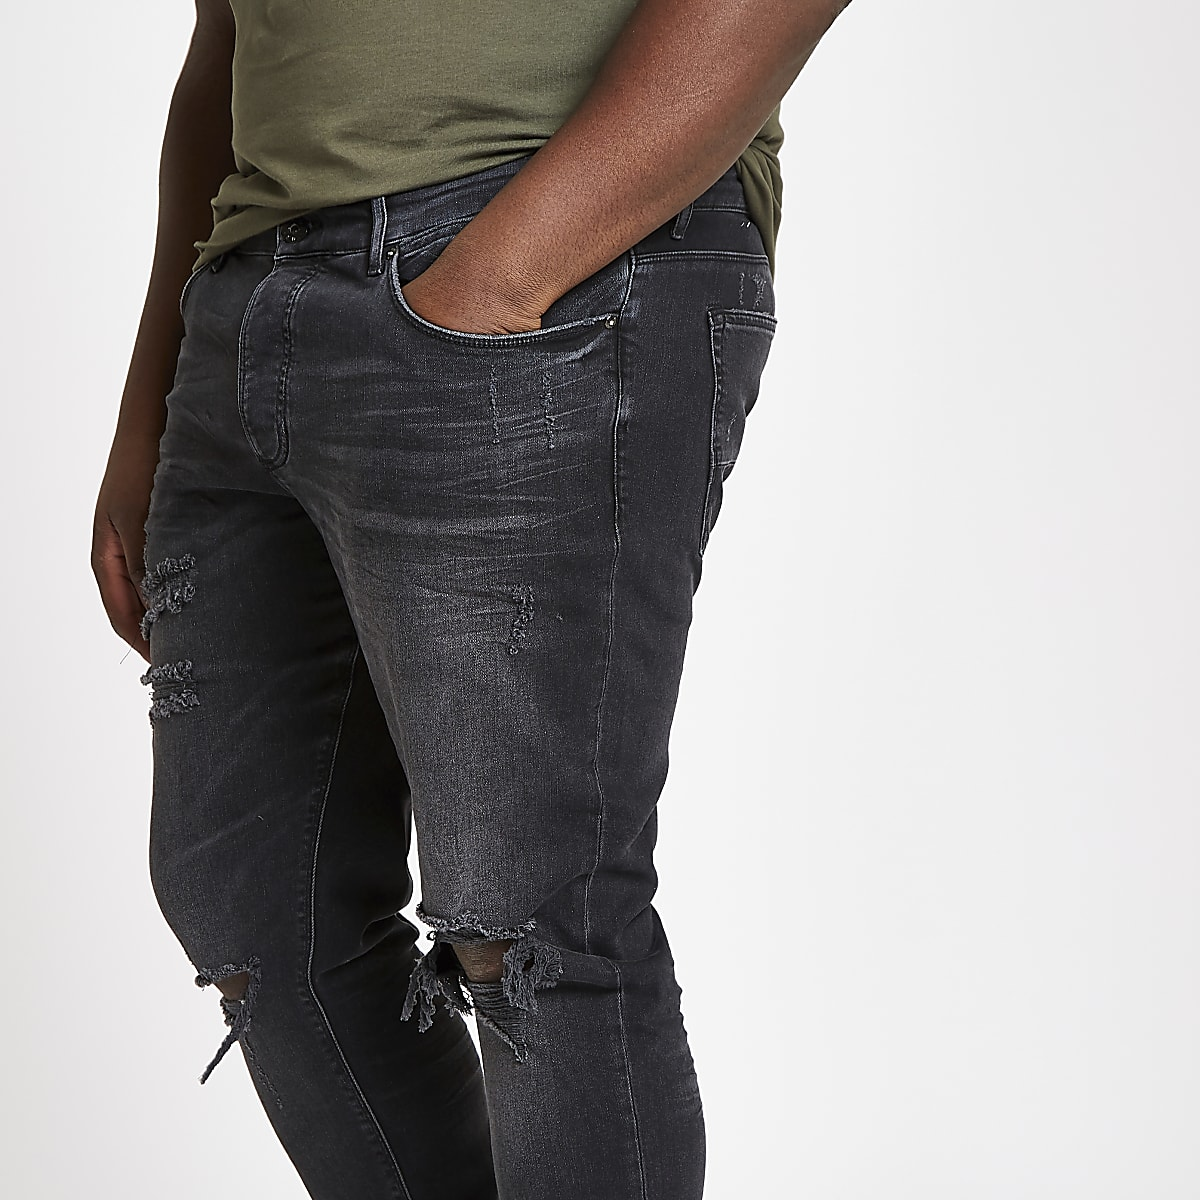 ade173f7 Big and Tall black ripped skinny jeans - Skinny Jeans - Jeans - men